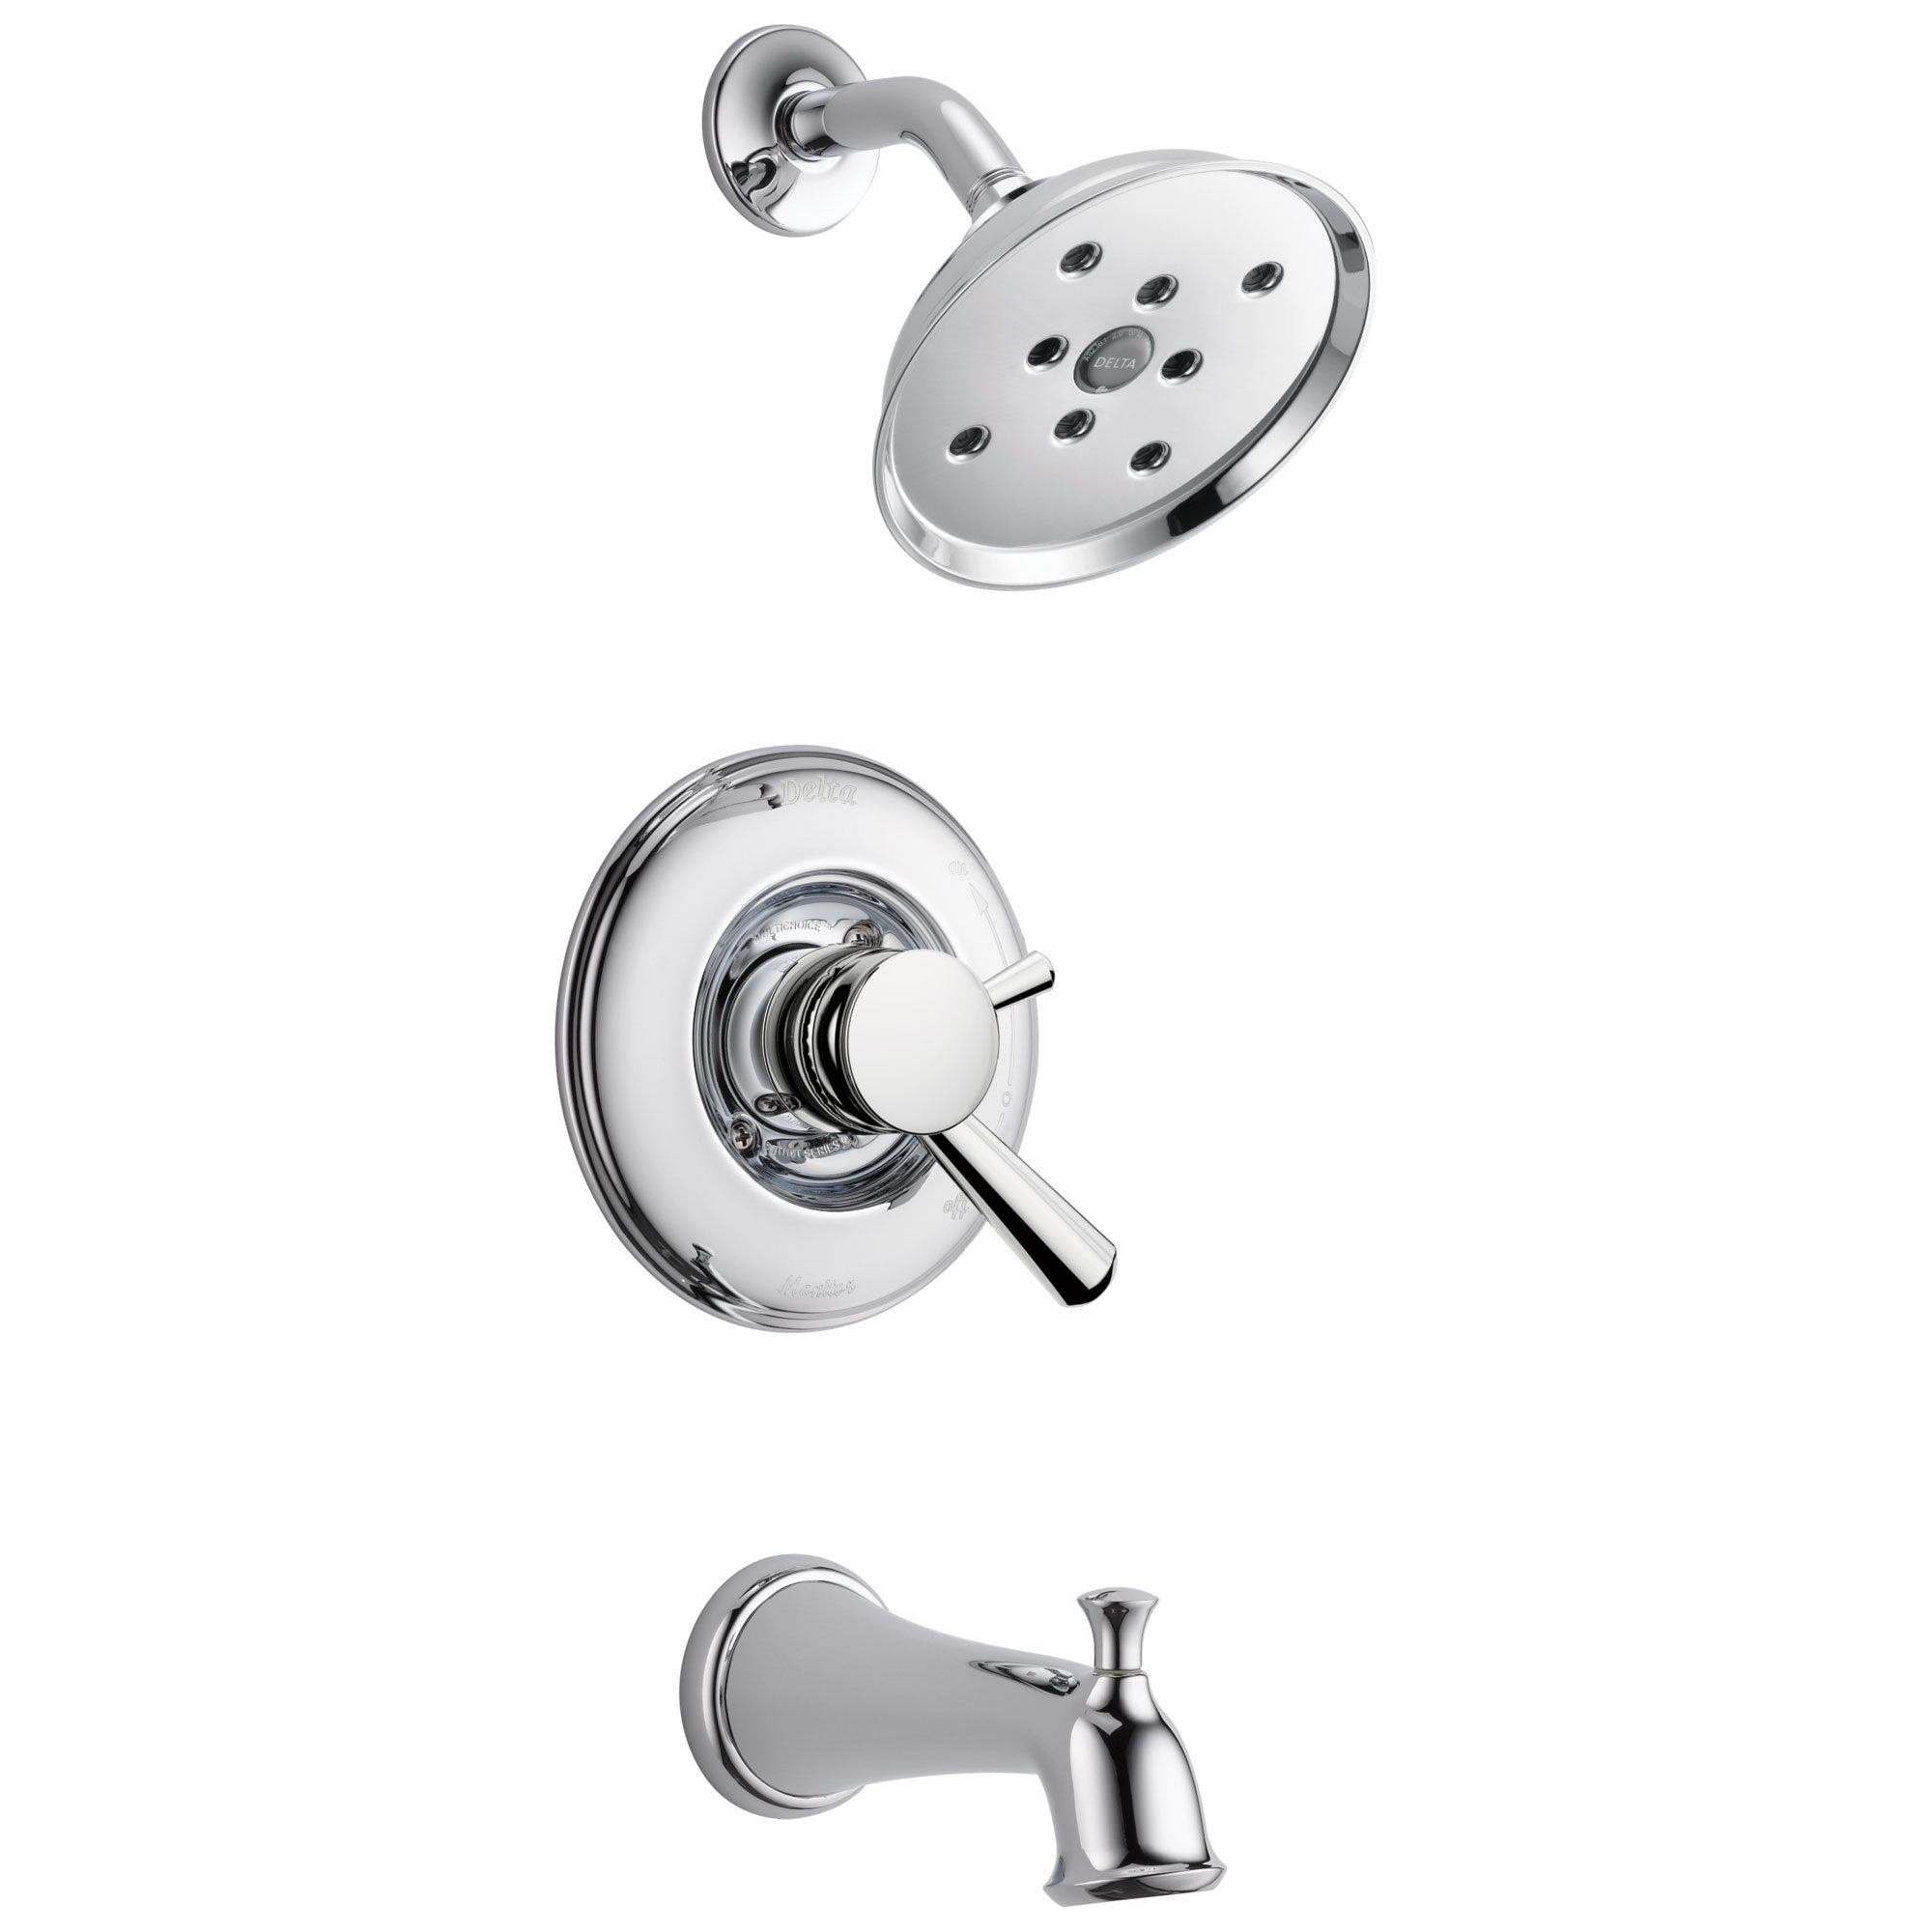 Delta Linden Collection Chrome Finish Monitor 17 Series H2Okinetic Tub and Shower Combination Faucet Includes Rough Valve with Stops D2294V